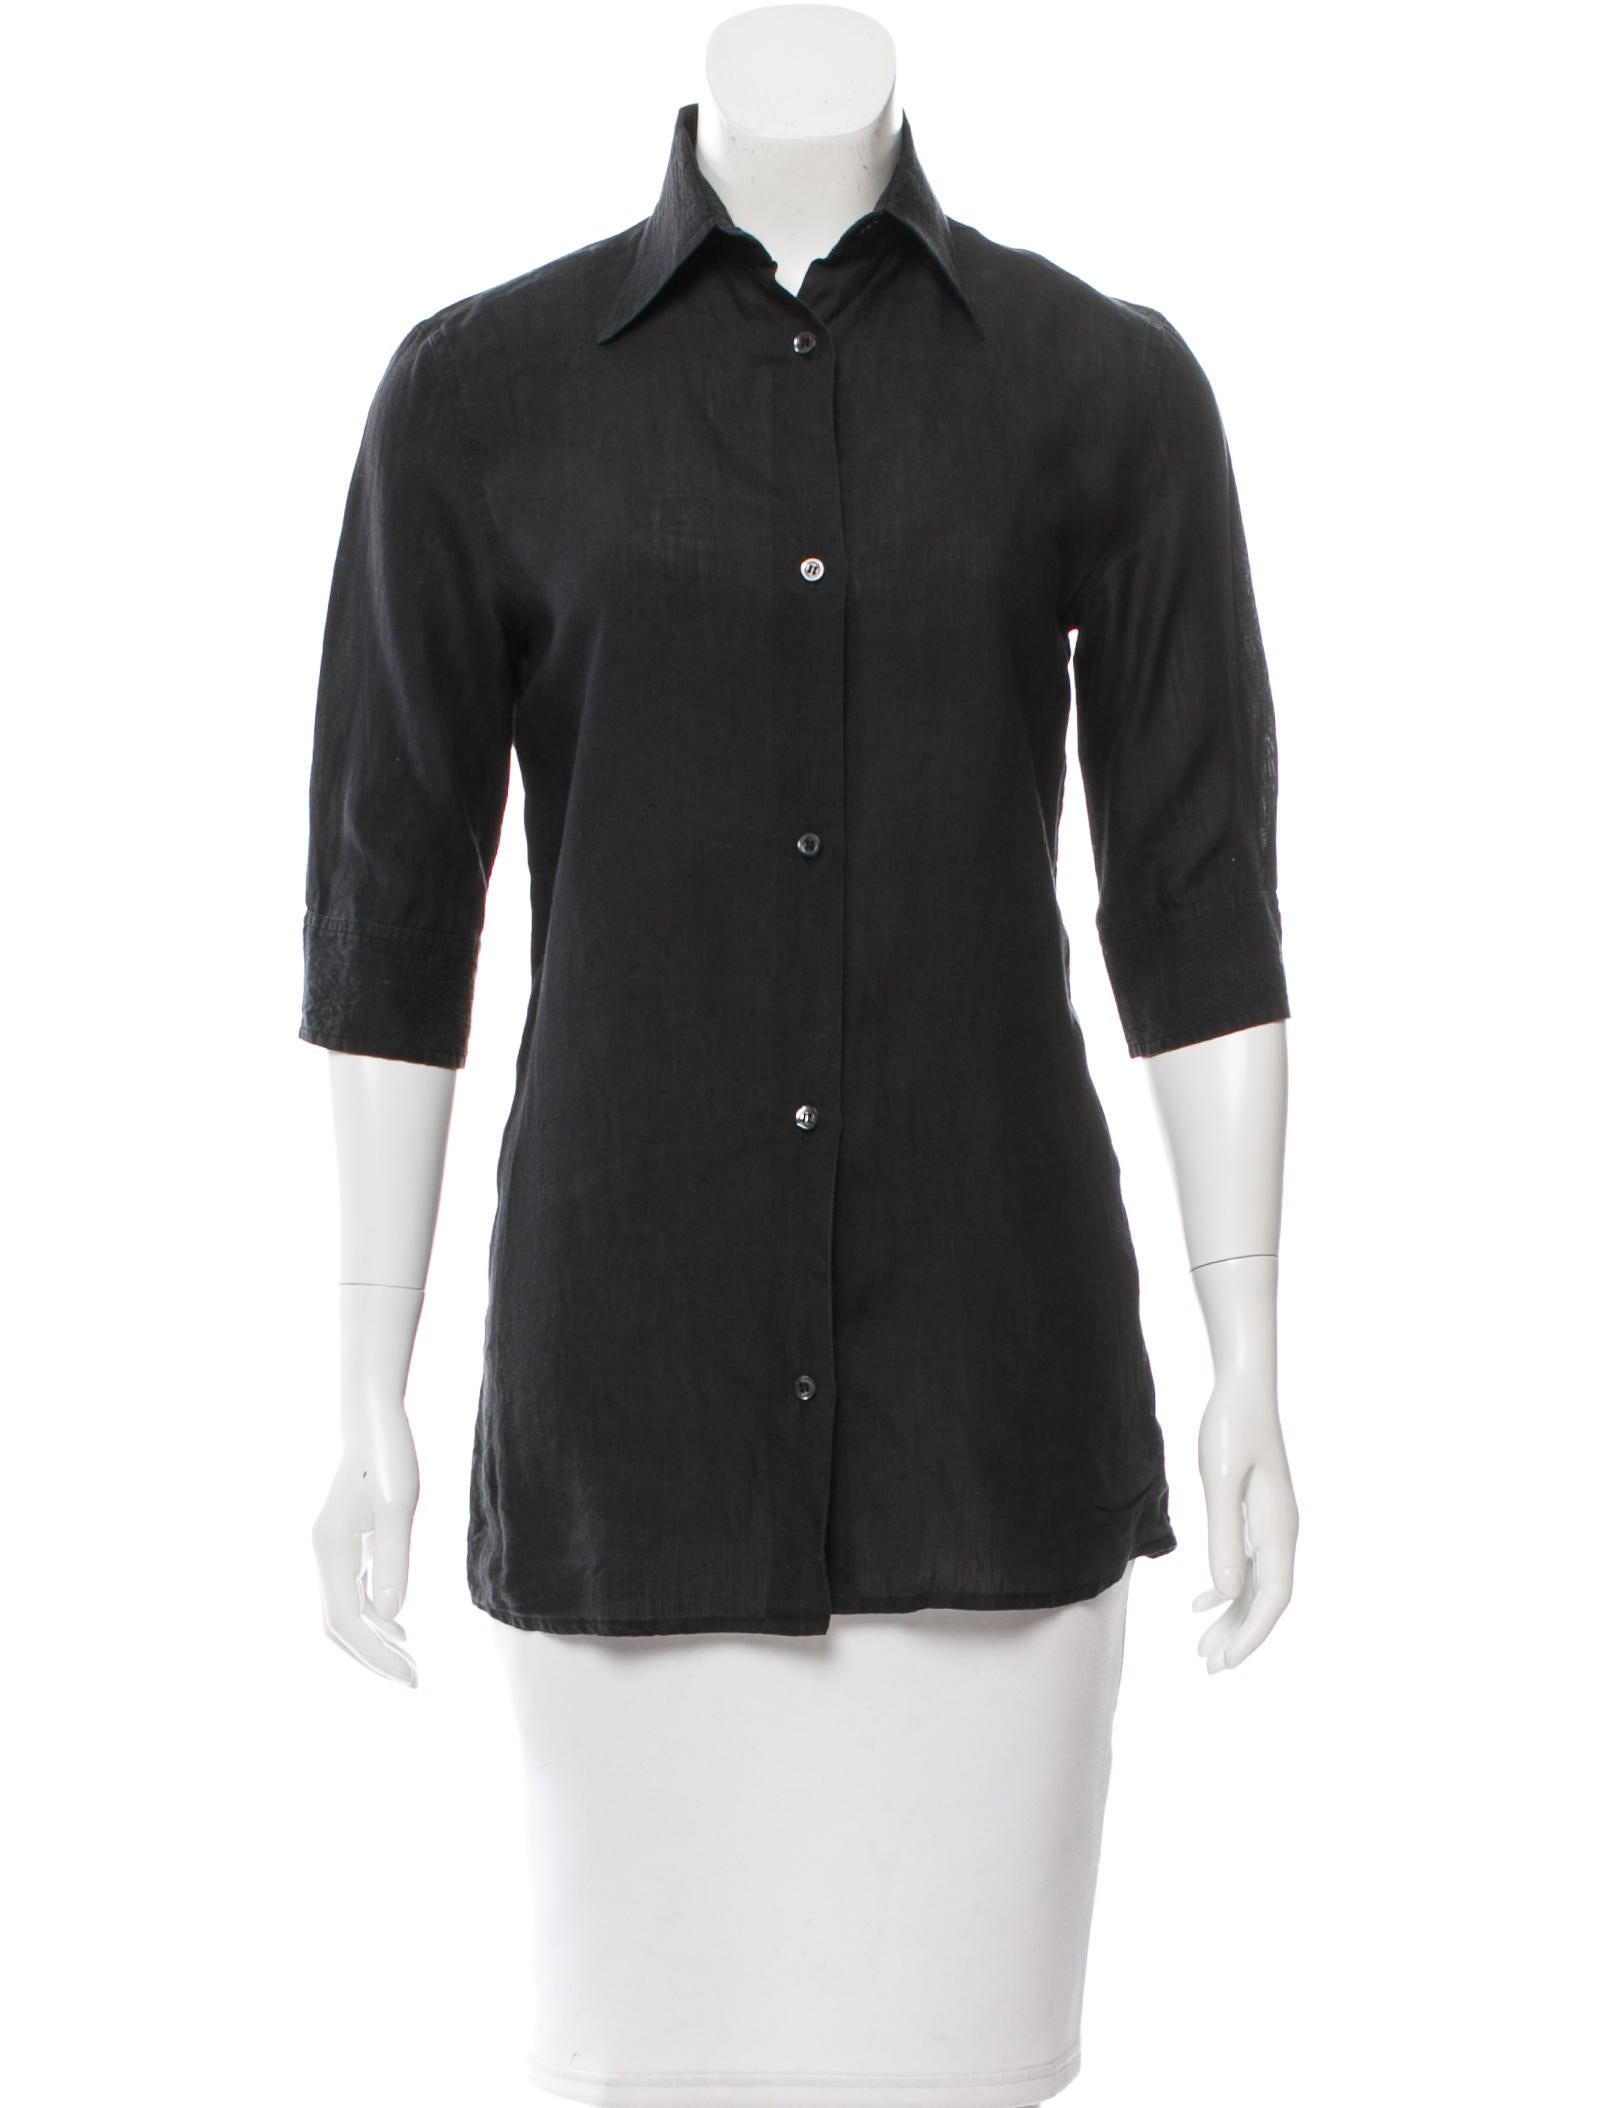 Sportmax collared button up top clothing wxs20423 for Button up collared sport shirts